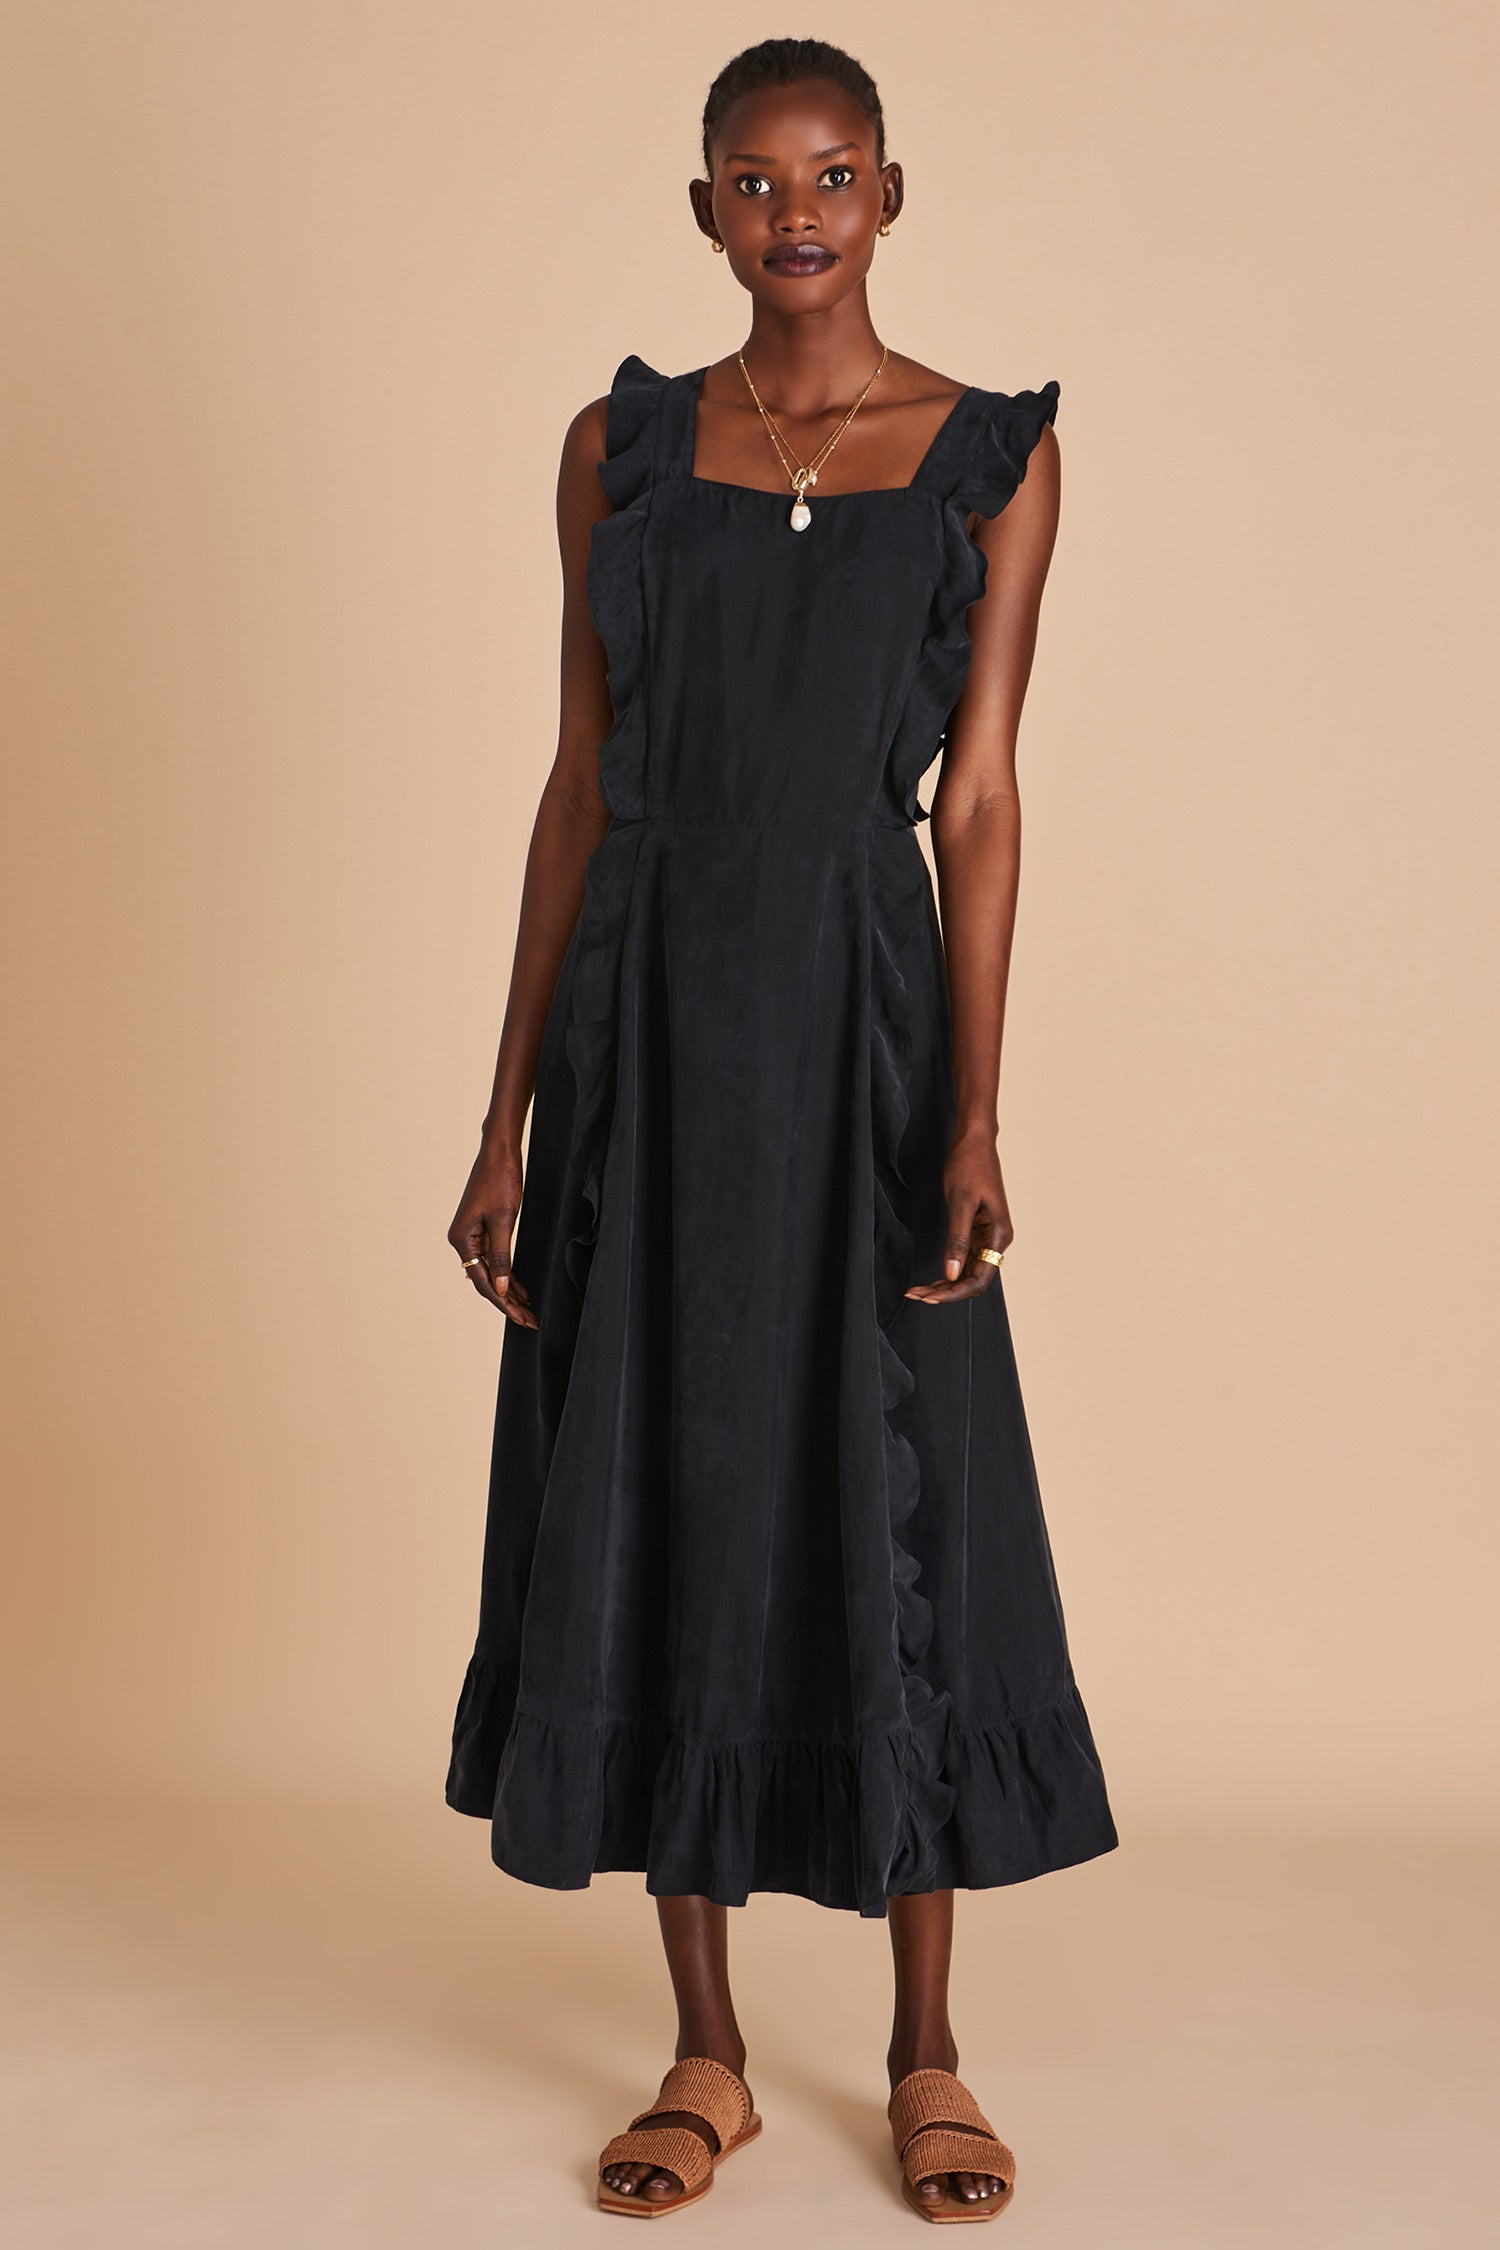 SANCIA BIJOU DRESS IN BLACK MADE FROM SUSTAINABLE